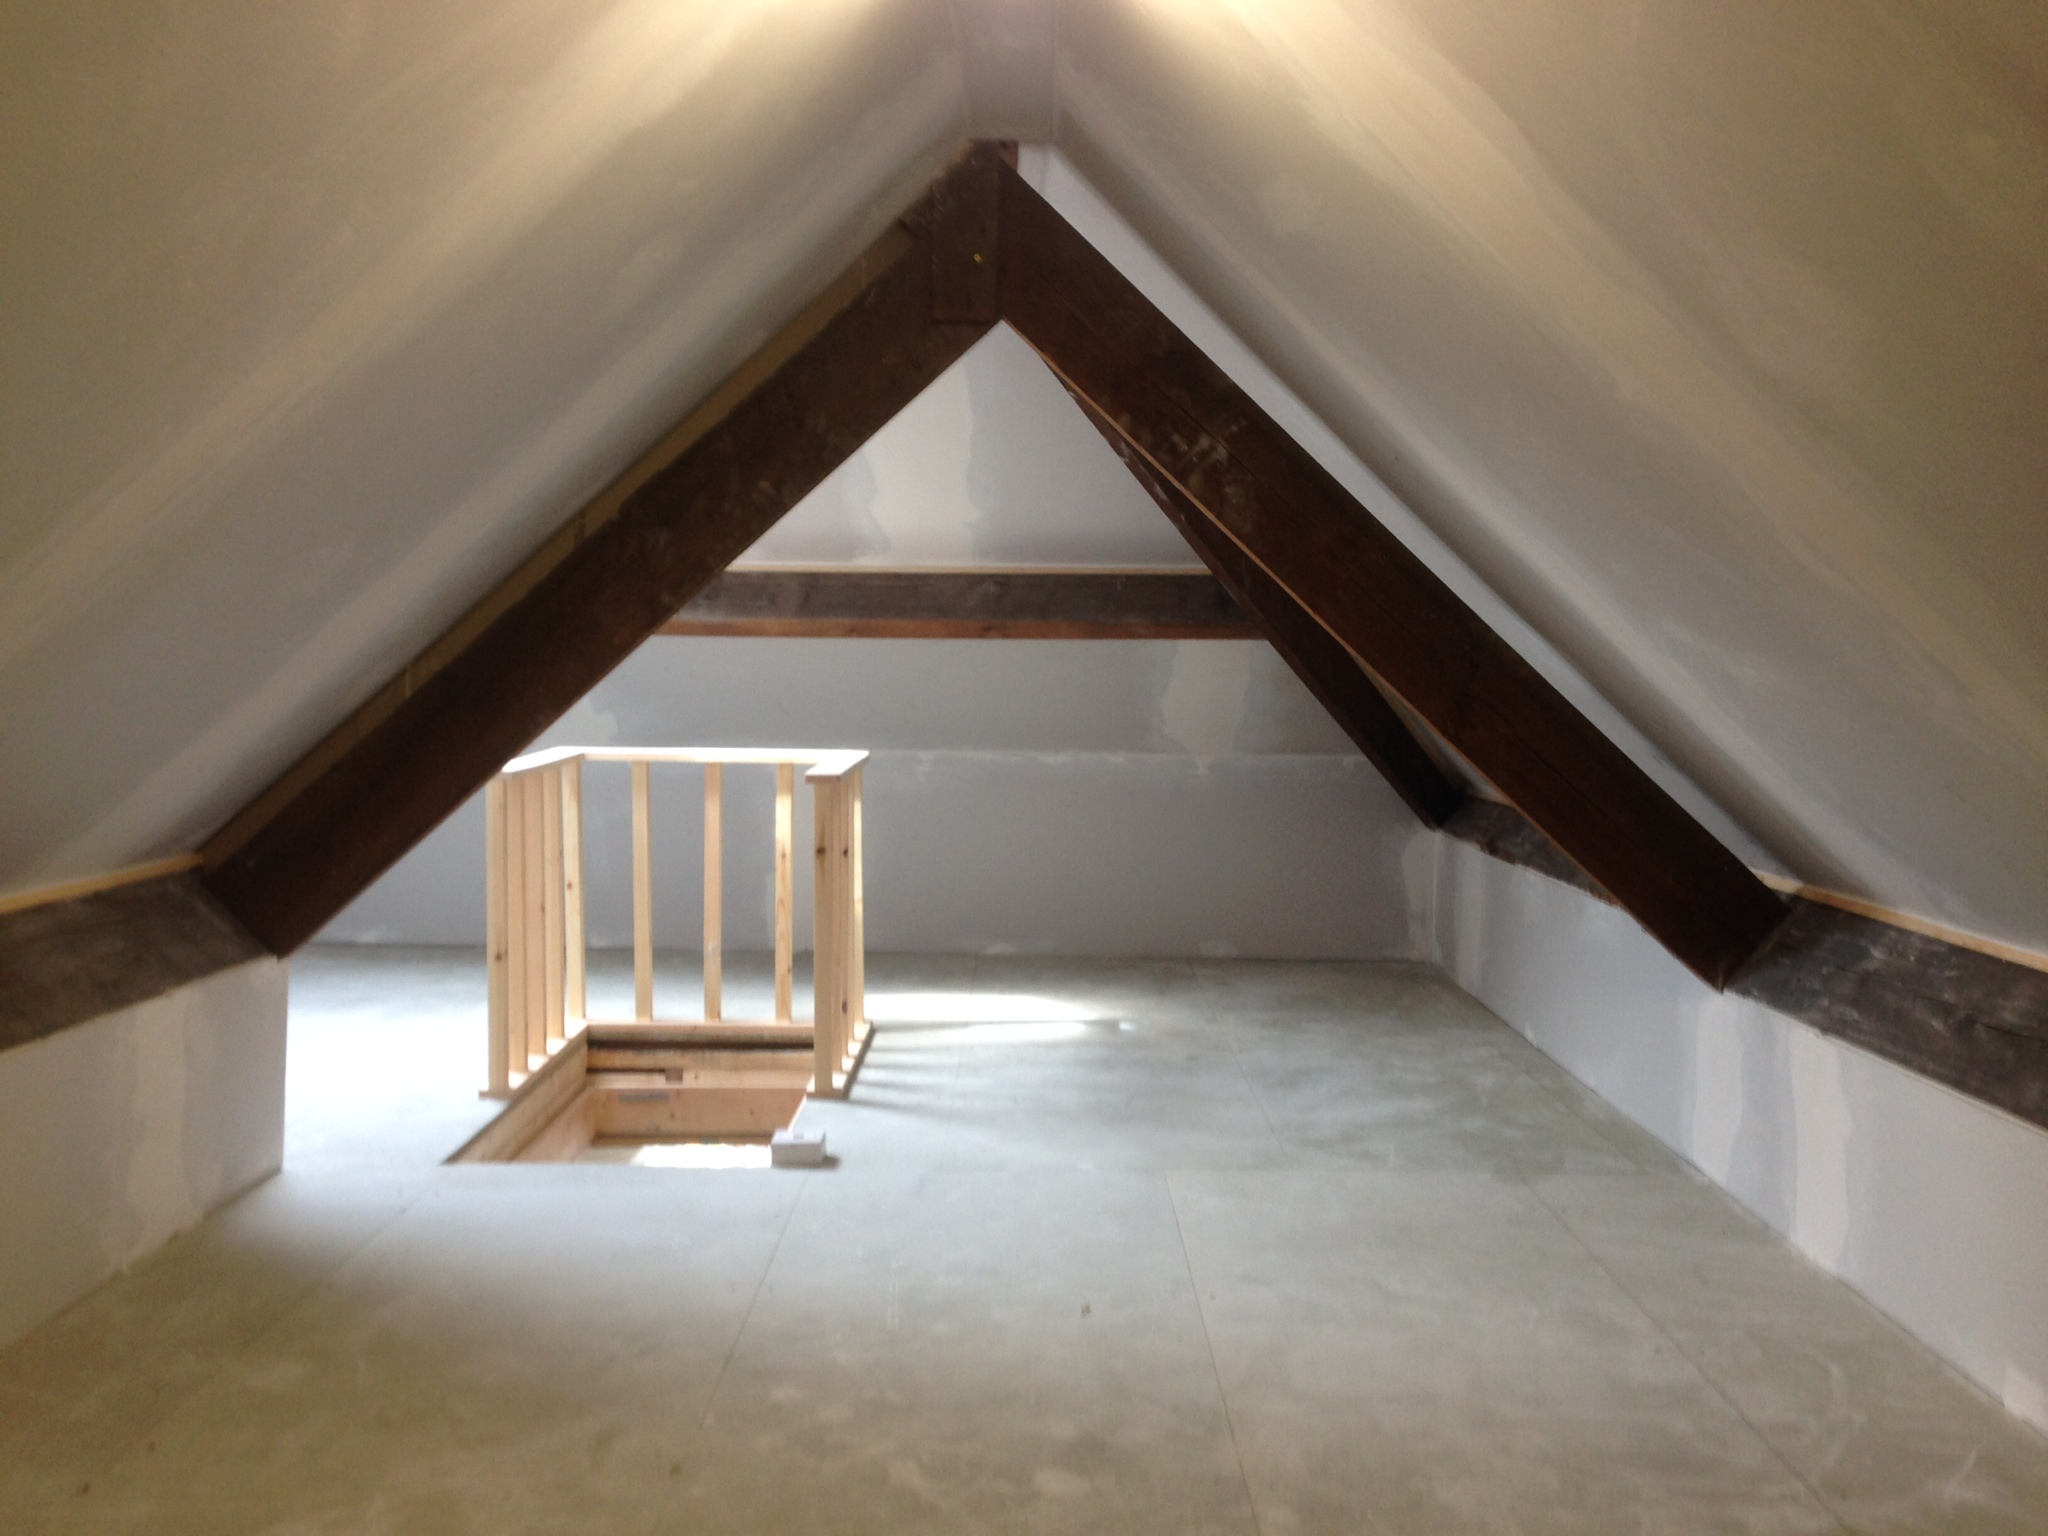 Boarding Out A Loft >> Loft insulation Archives - https://loftysolution.com/https://loftysolution.com/